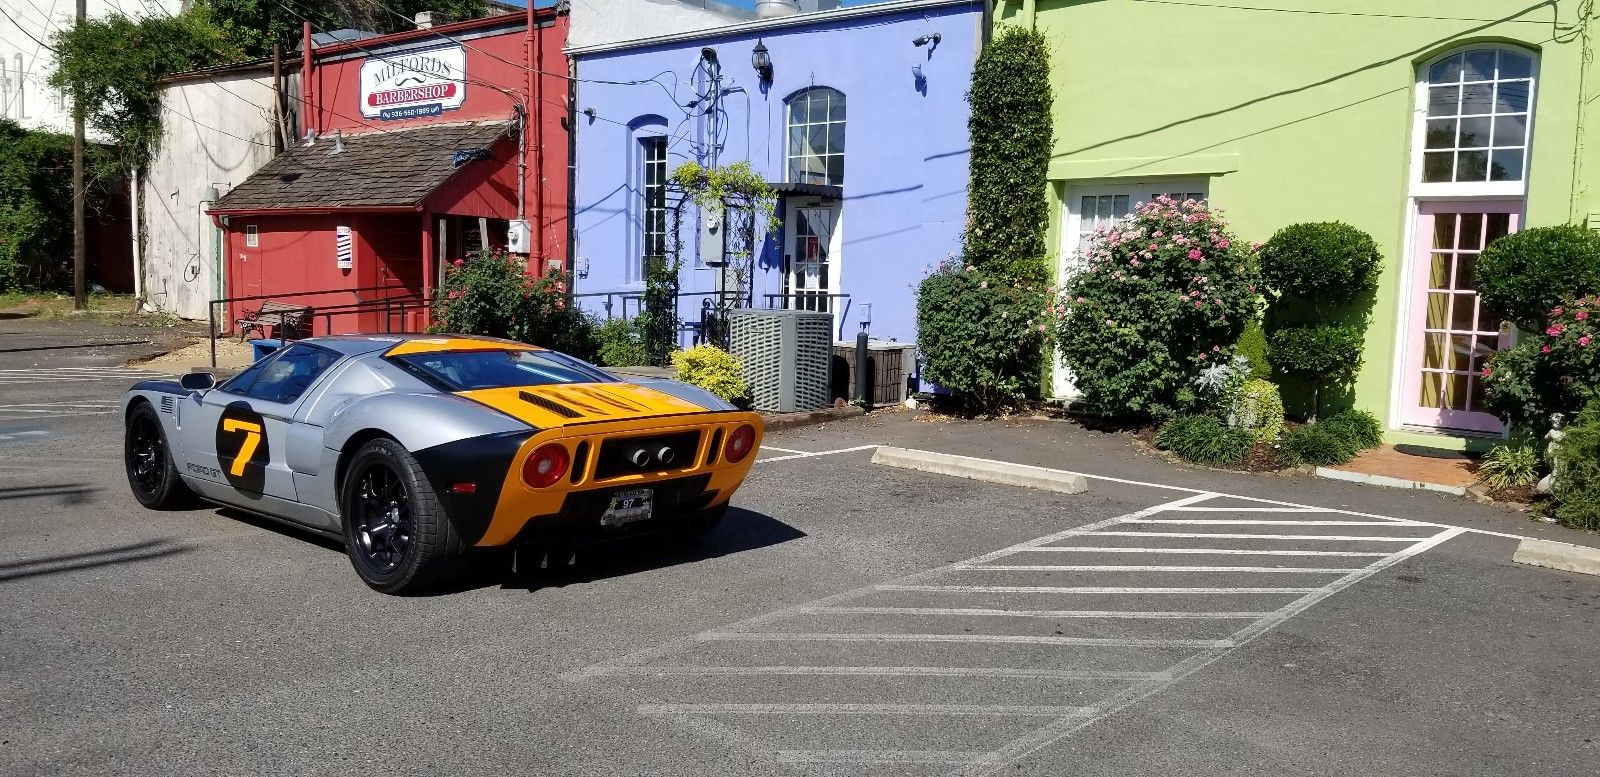 solar 7 ford gt back 3/4